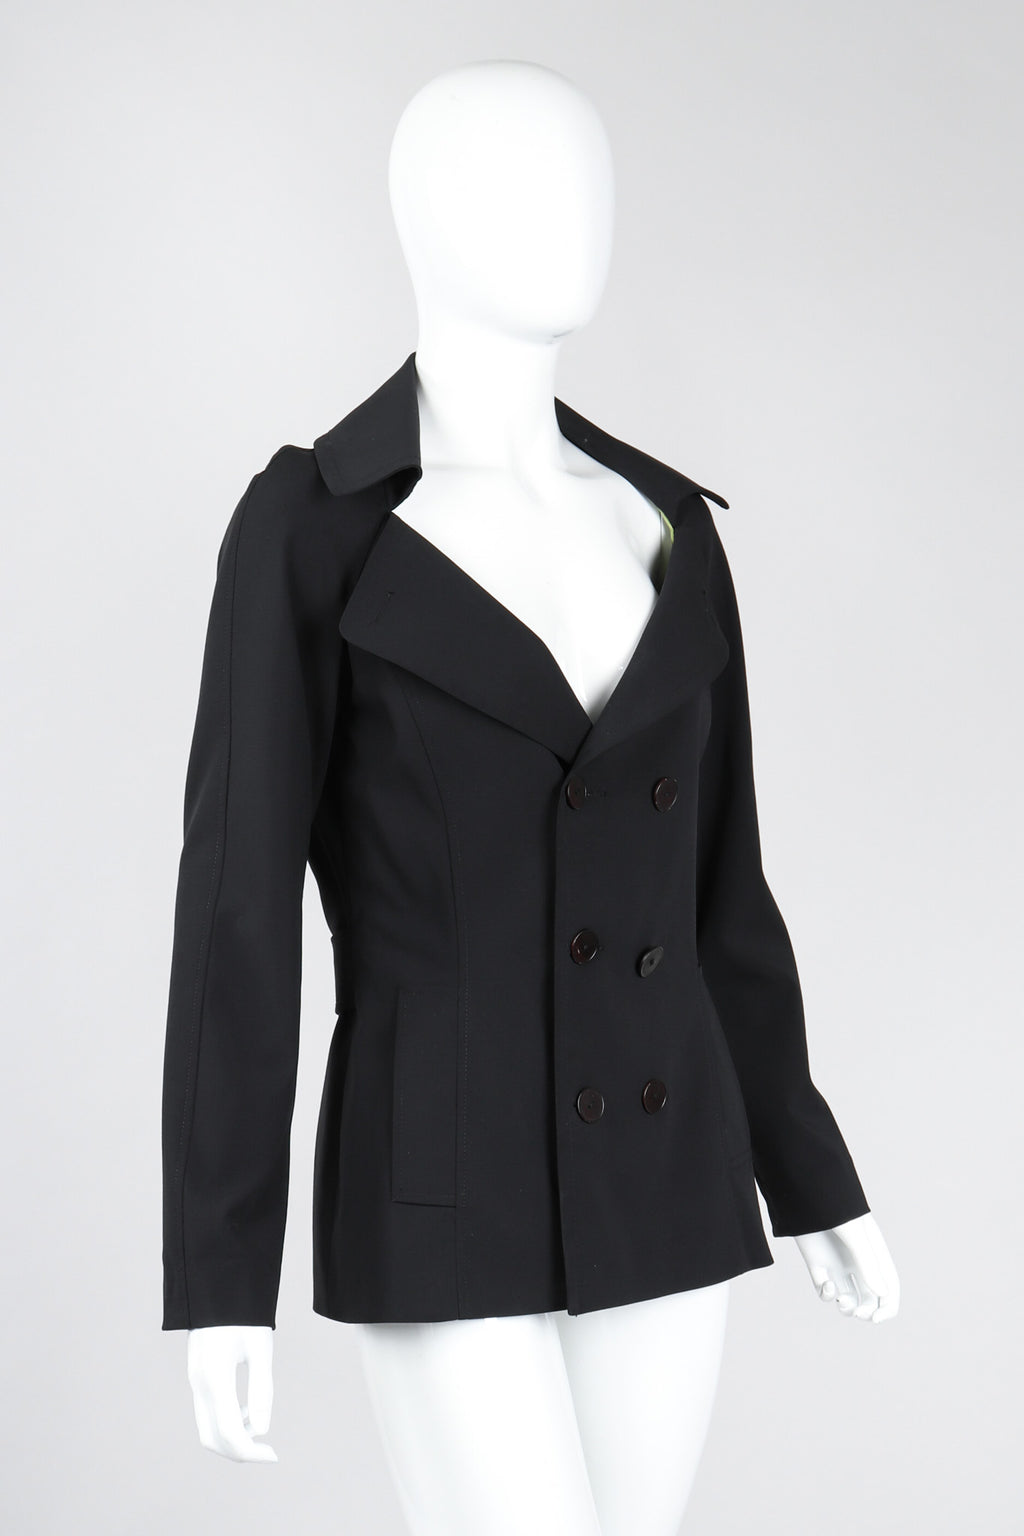 Recess Los Angeles Vintage Jean Paul Gaultier Diamond Collar Sailor Peacoat